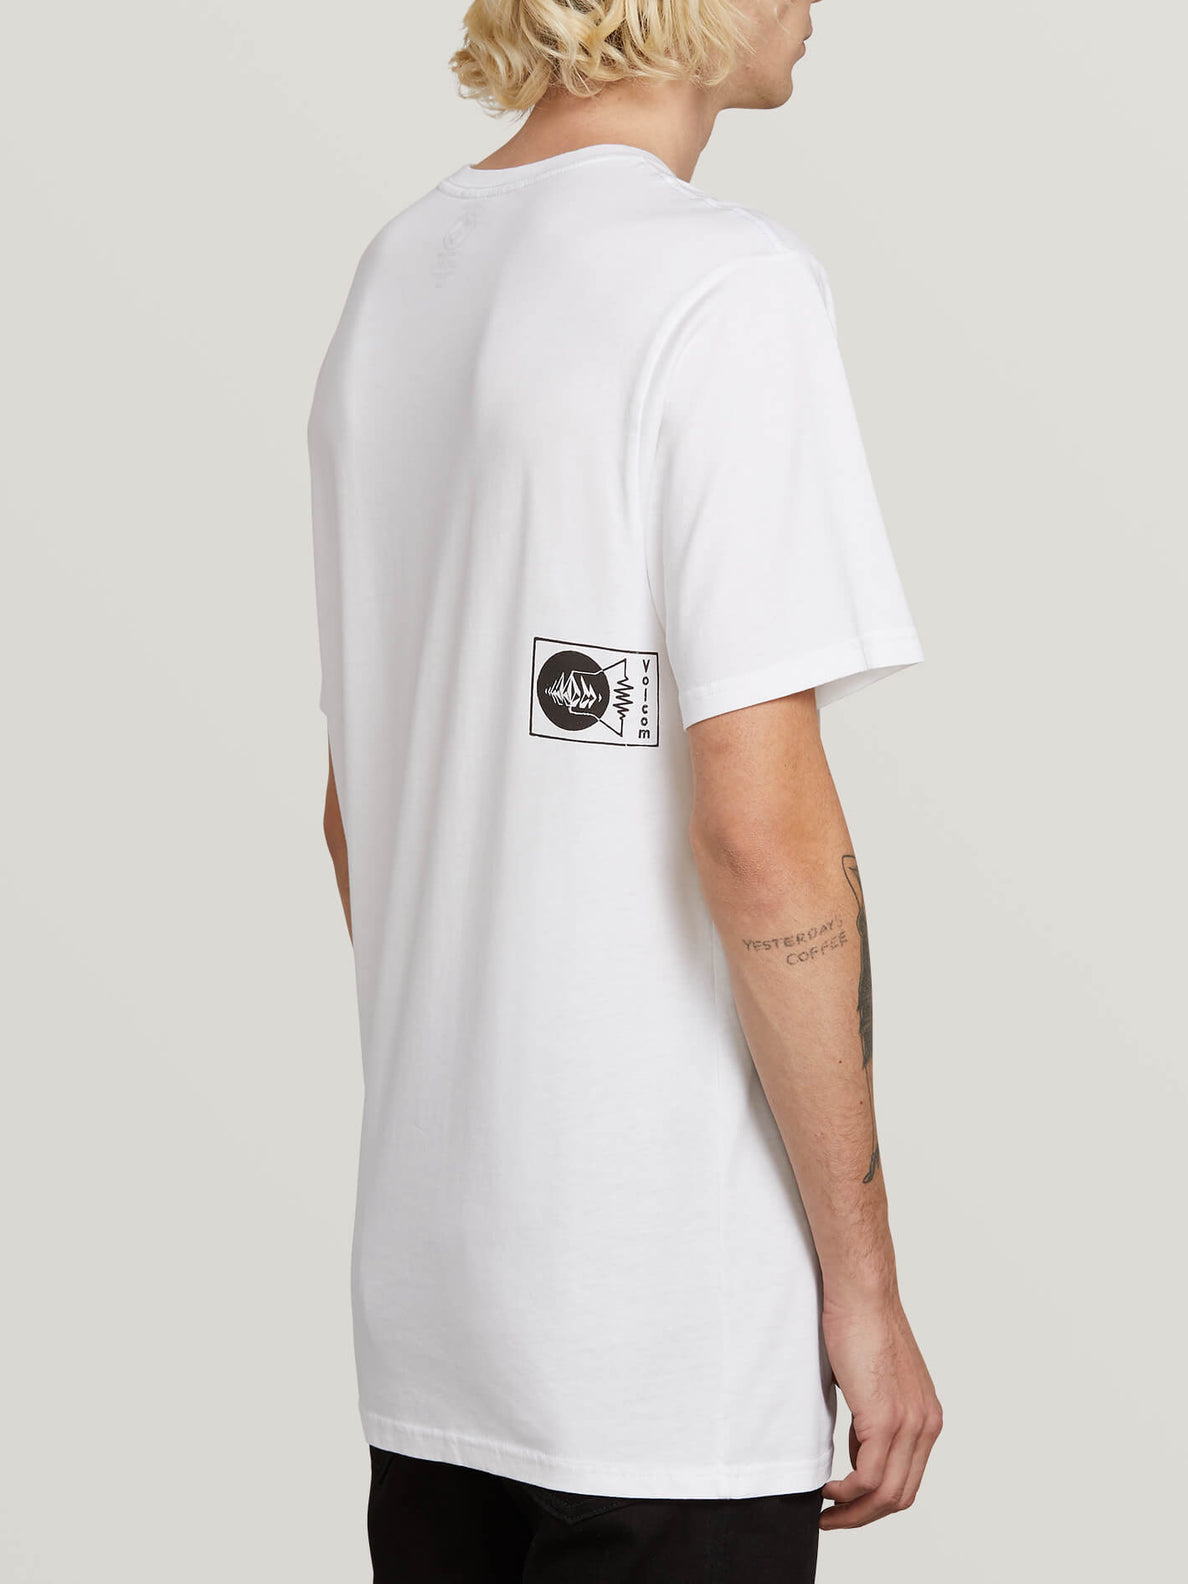 Audio Waves Short Sleeve Tee In White, Alternate View